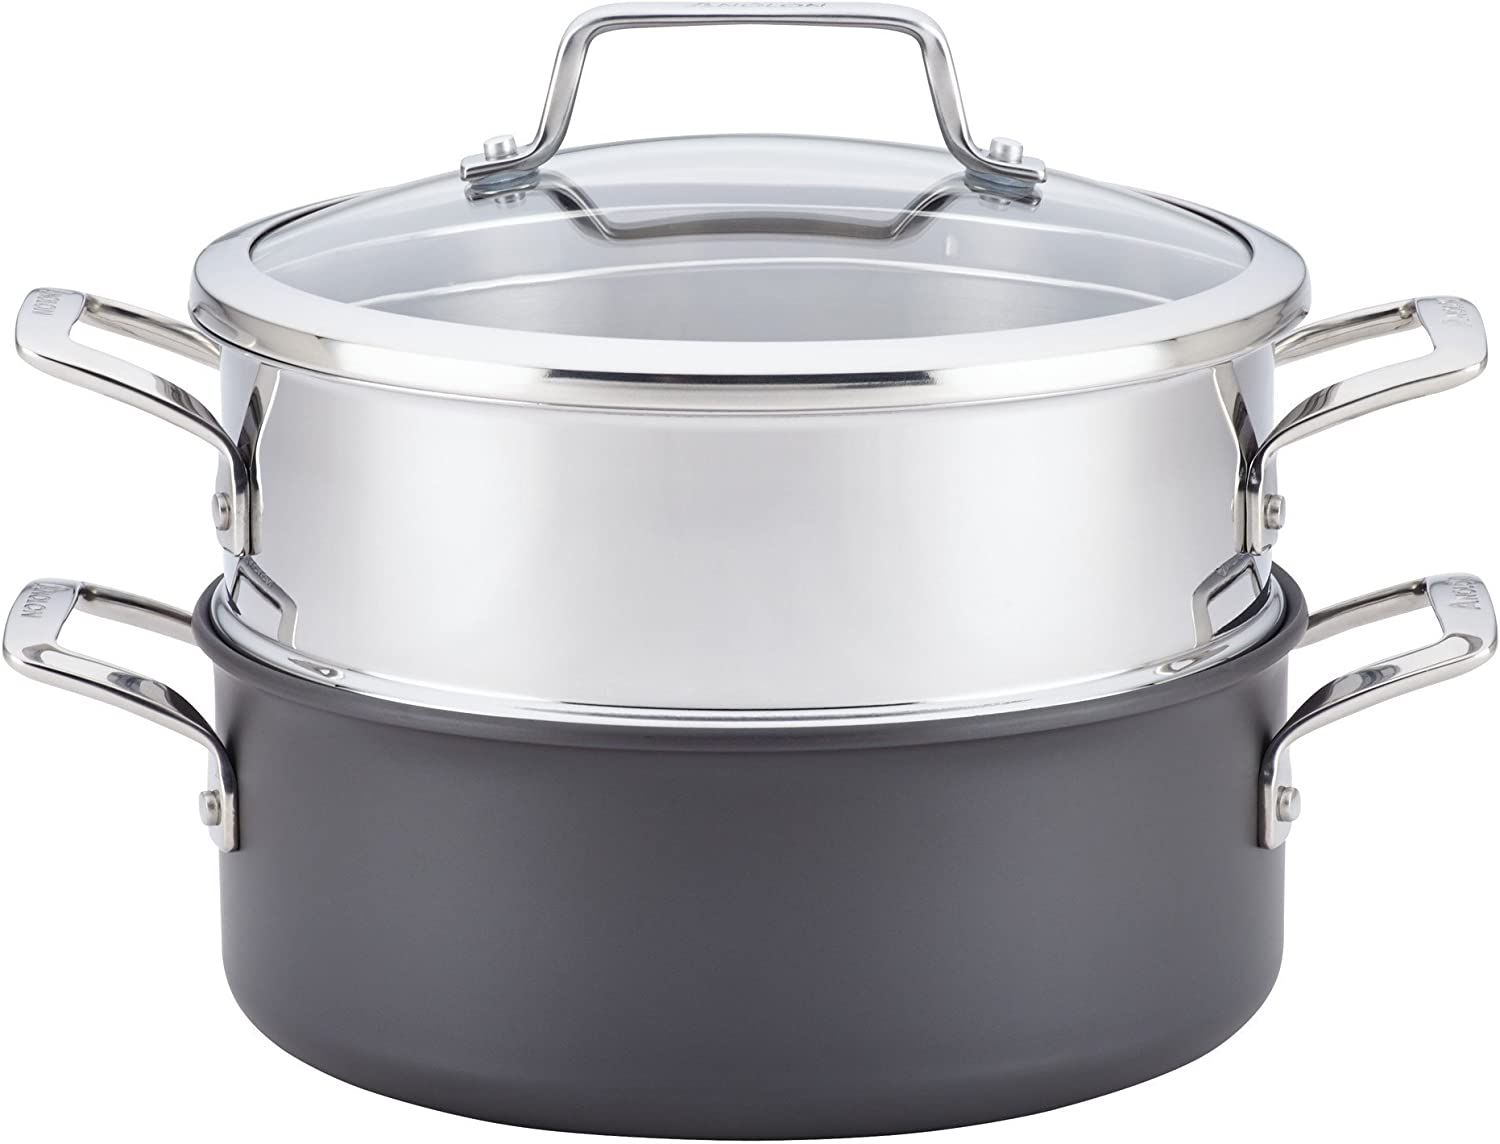 Gray Anolon 81059 Authority Hard Anodized Nonstick Covered Dutch Oven with Steamer Insert 5 quarts